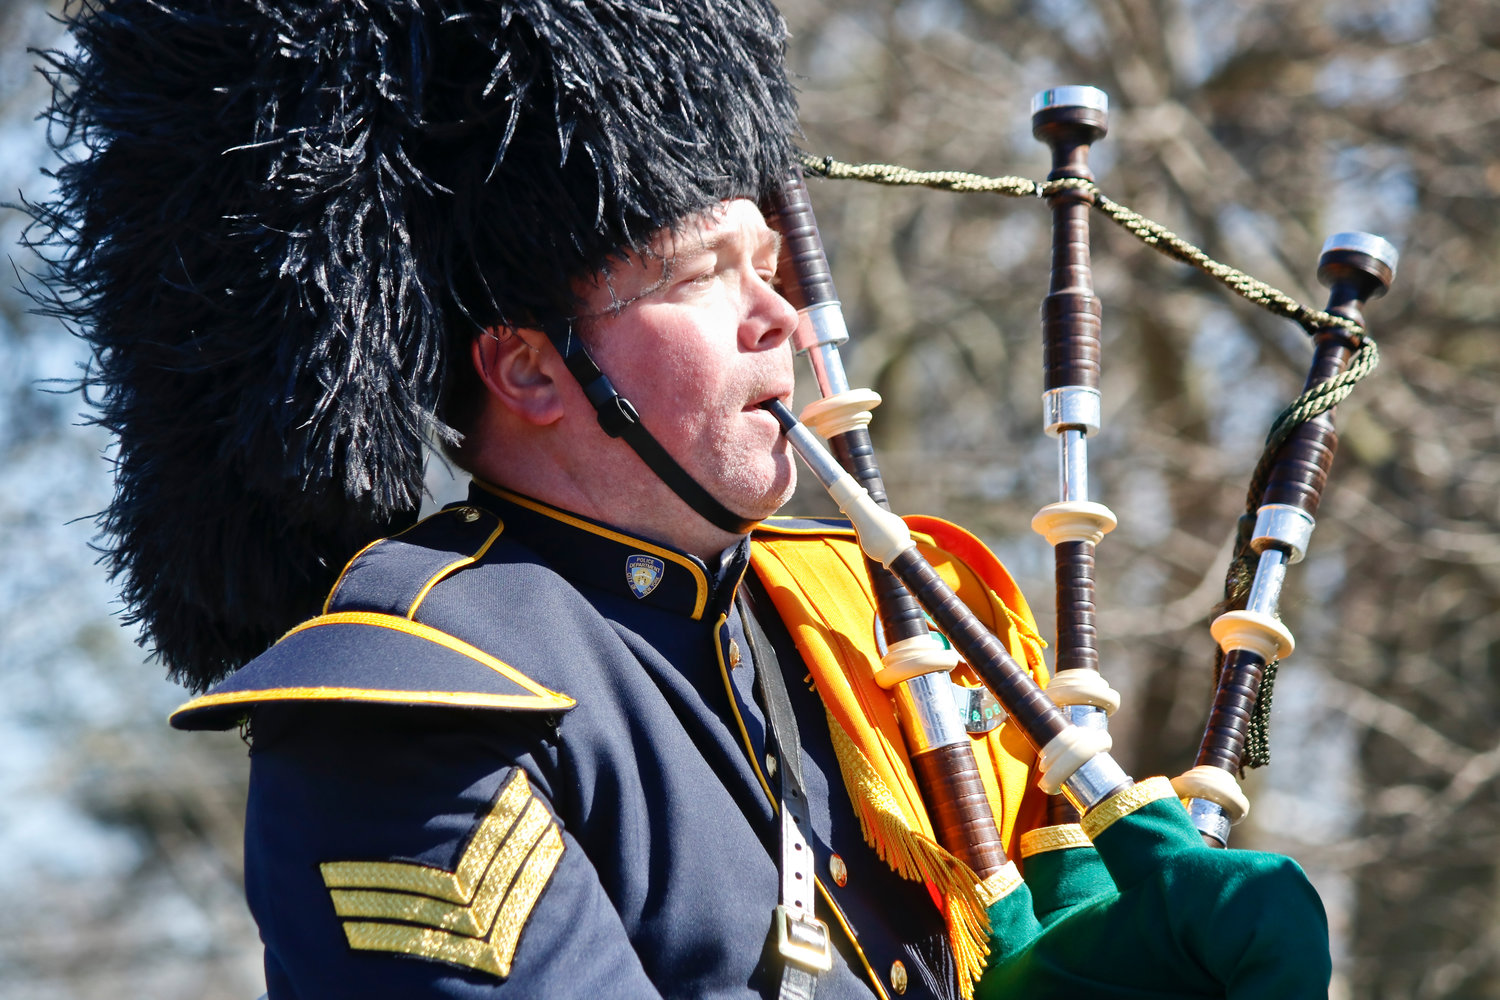 NYPD Emerald Soceity bagpiper Sgt. Danny O'Connell played the pipes along the route.